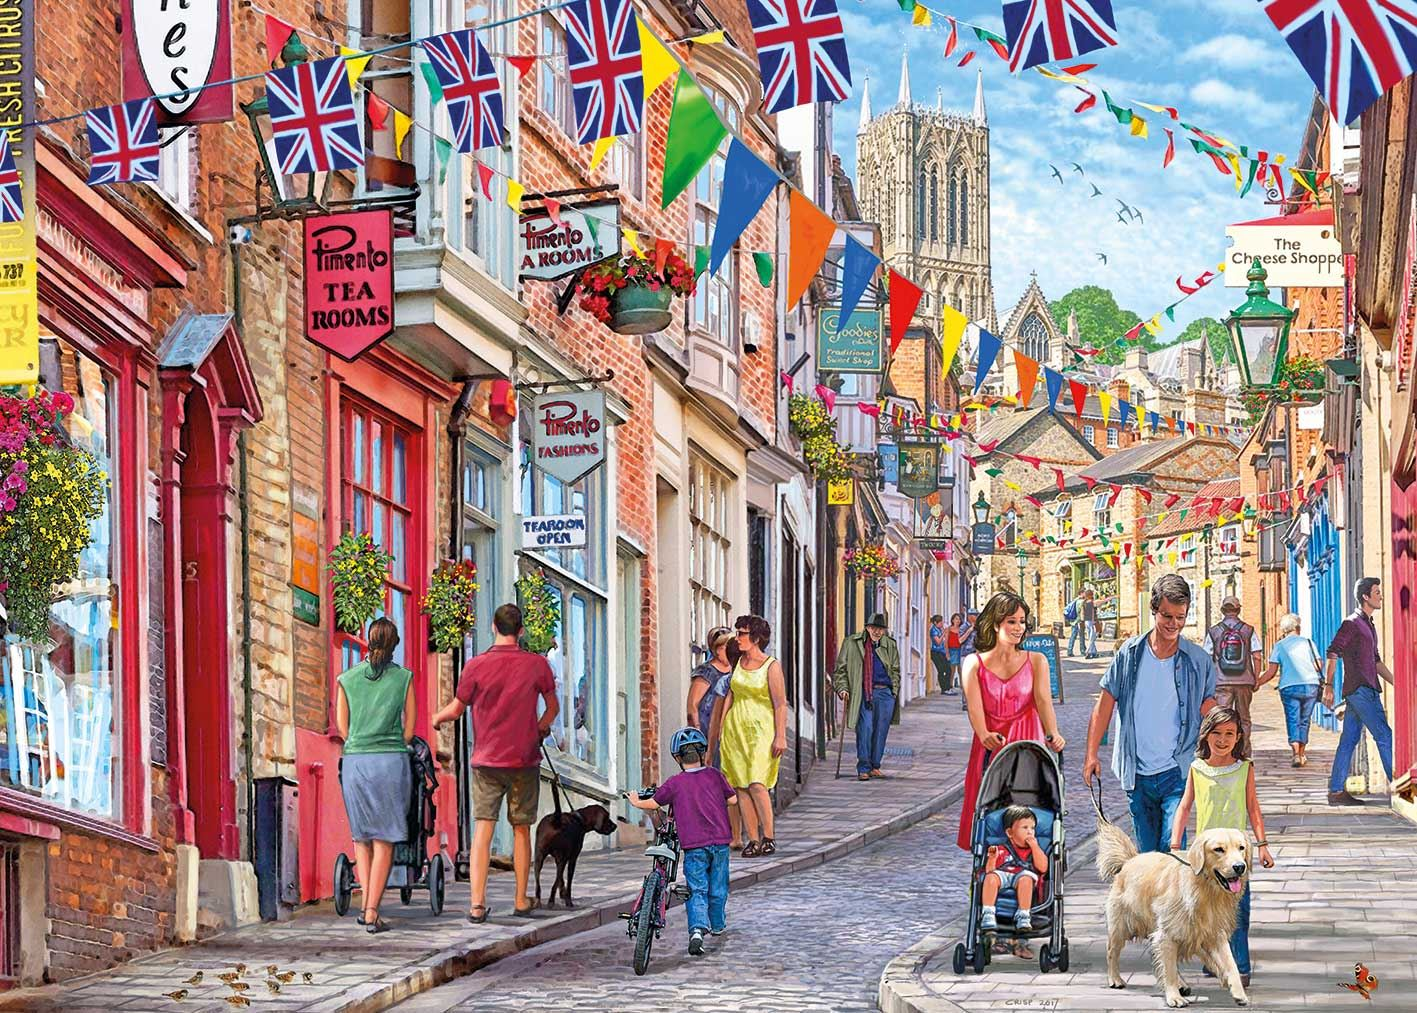 Gibsons Steep Hill Jigsaw Puzzle (1000 pieces)